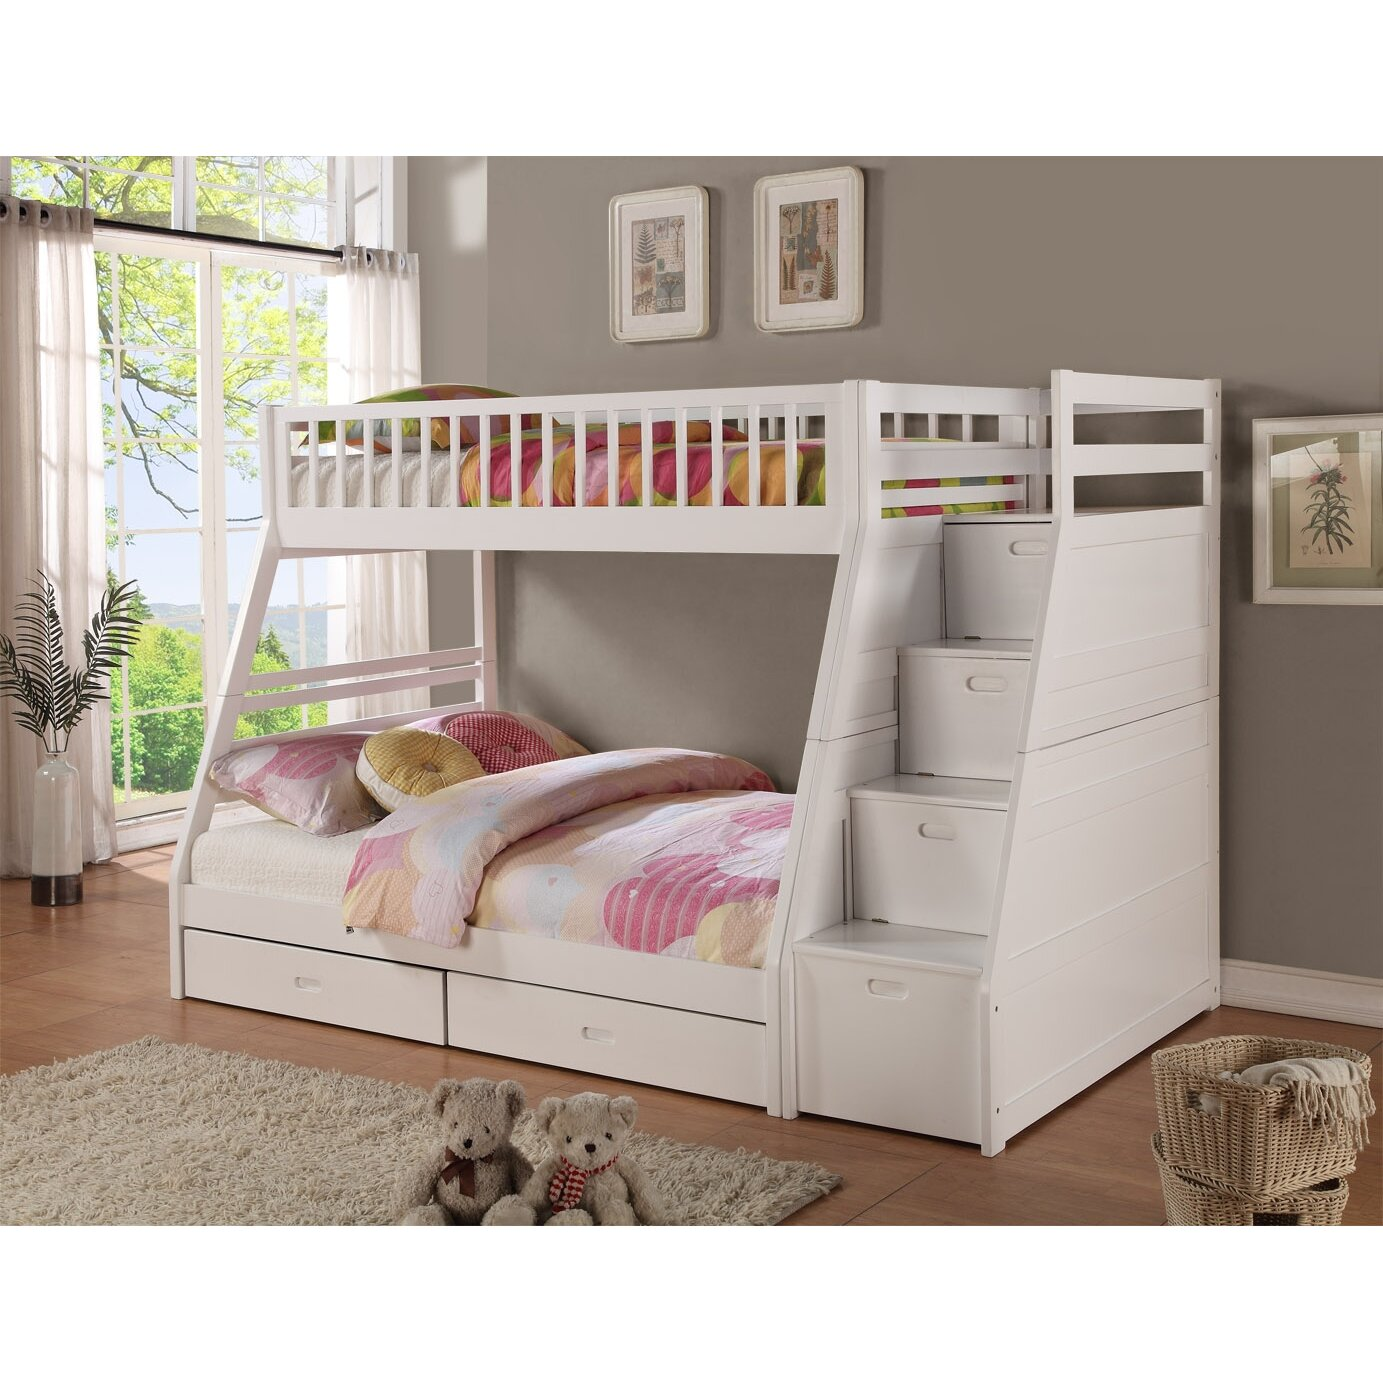 Pine bunk beds with storage - Wildon Home Reg Dakota Twin Over Full Bunk Bed With Storage